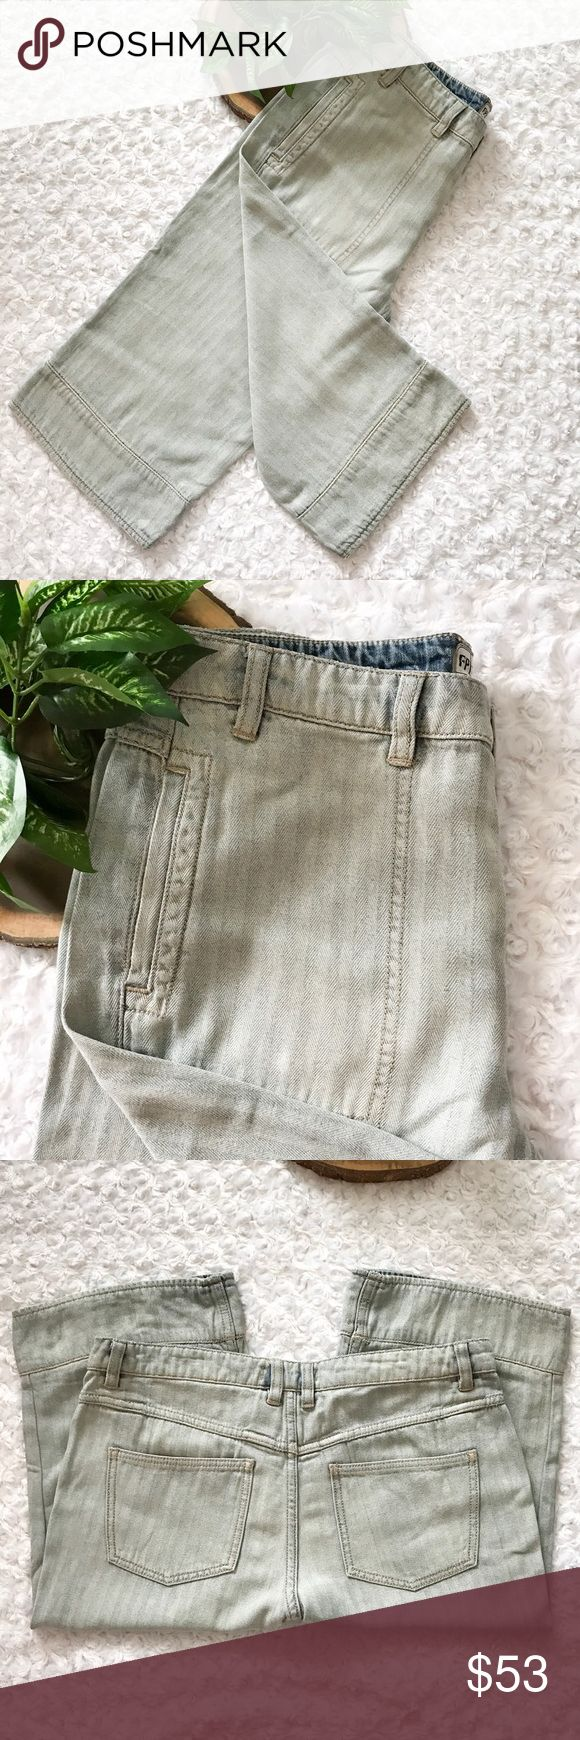 NEW Free People Light Wash Stripe Denim Capri Jean NEW Free People Light Wash Stripe Denim Capri Cropped Jeans. Light faded wash. Button fly. NWOT. Size 28. Pet and smoke free home. No Trades! Bundle and save! Inquire below with questions! Thanks for looking, sharing, and saving. Free People Jeans Ankle & Cropped